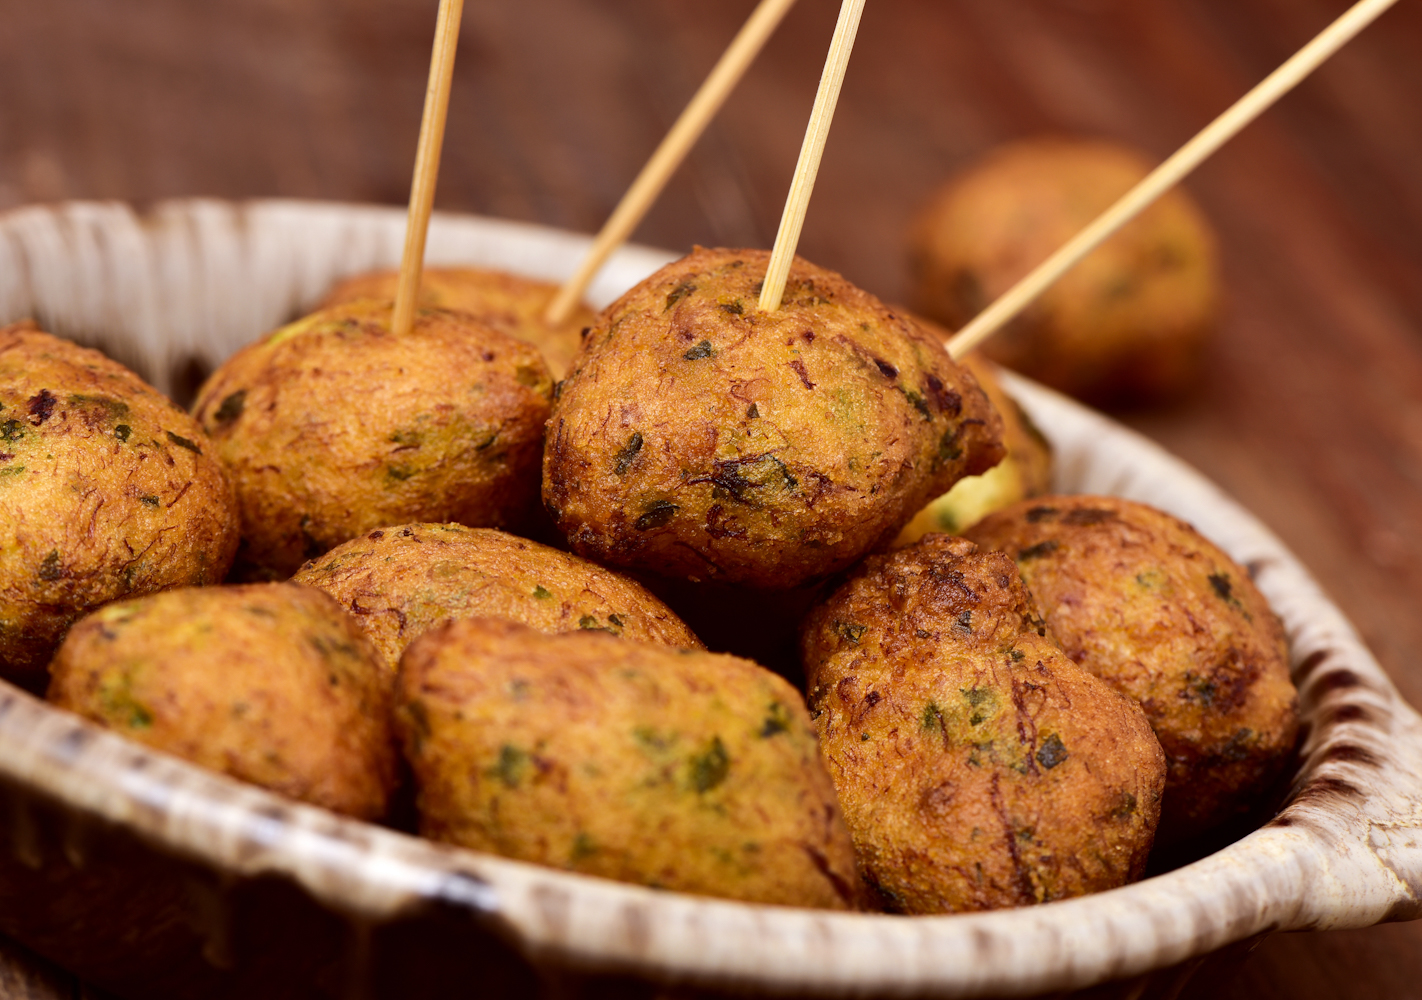 Fulfill your craving for fried food with these delicious Portuguese-style cod fritters.